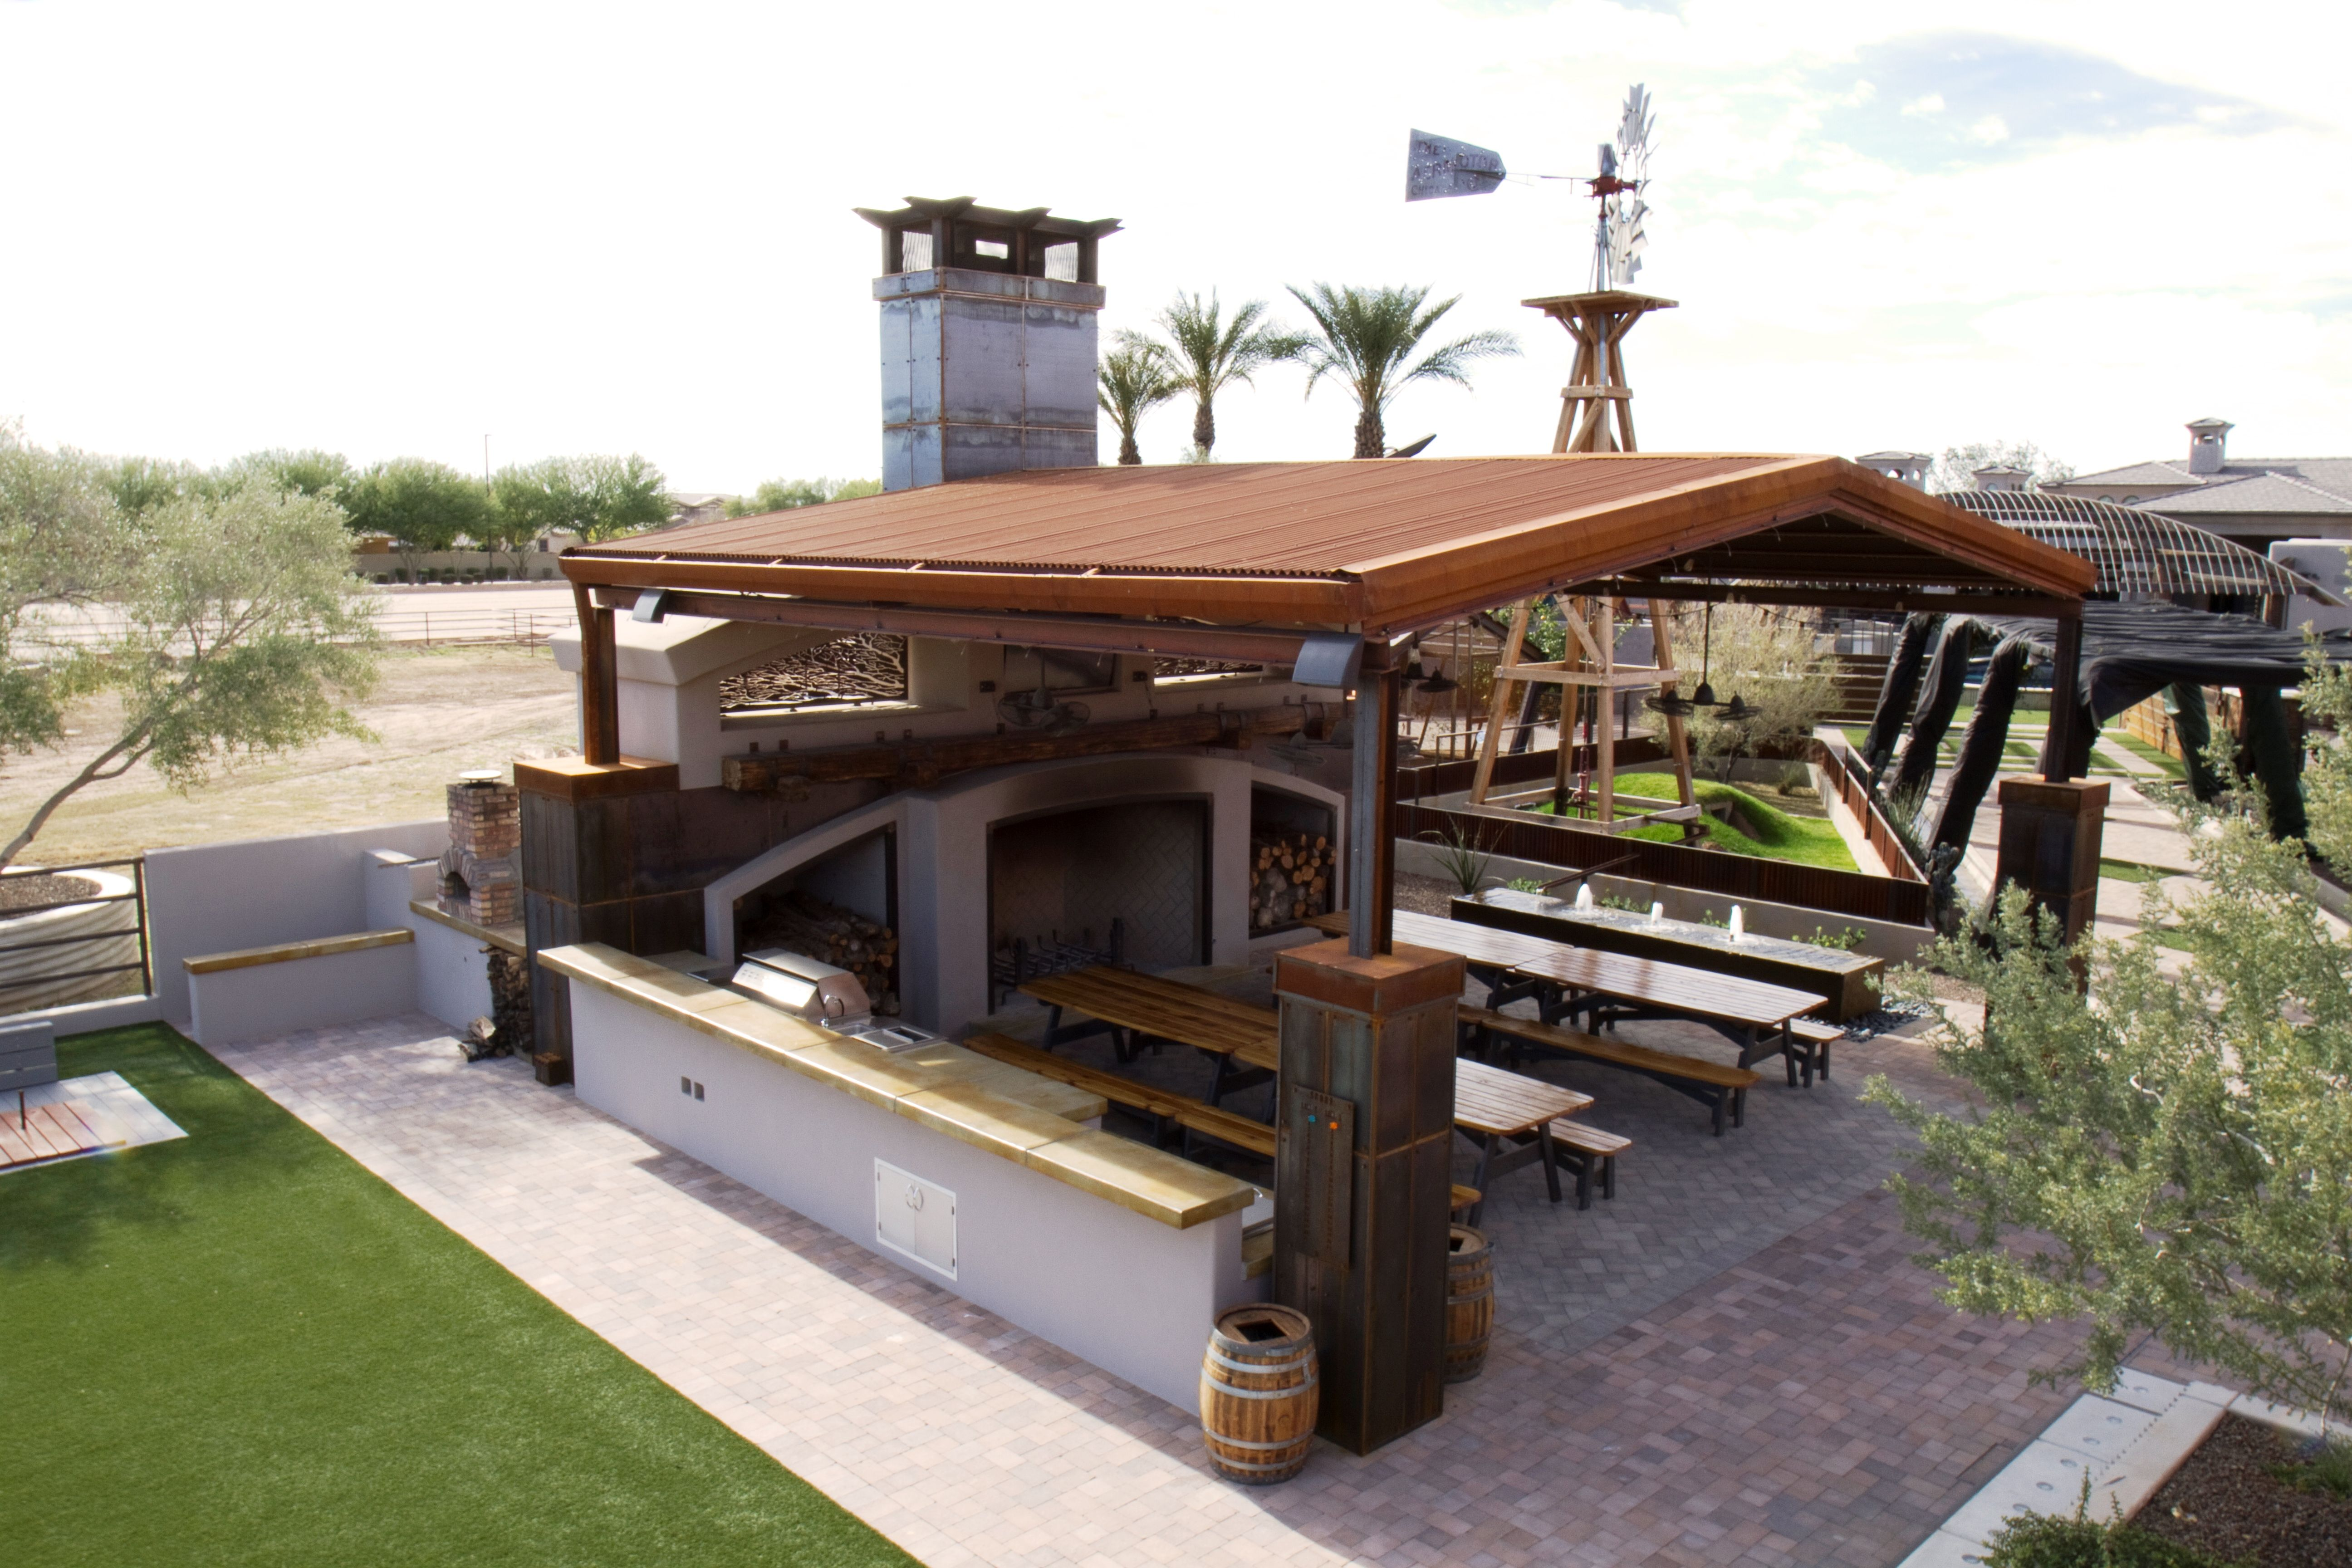 Steel shade structure over a large patio area in a luxury